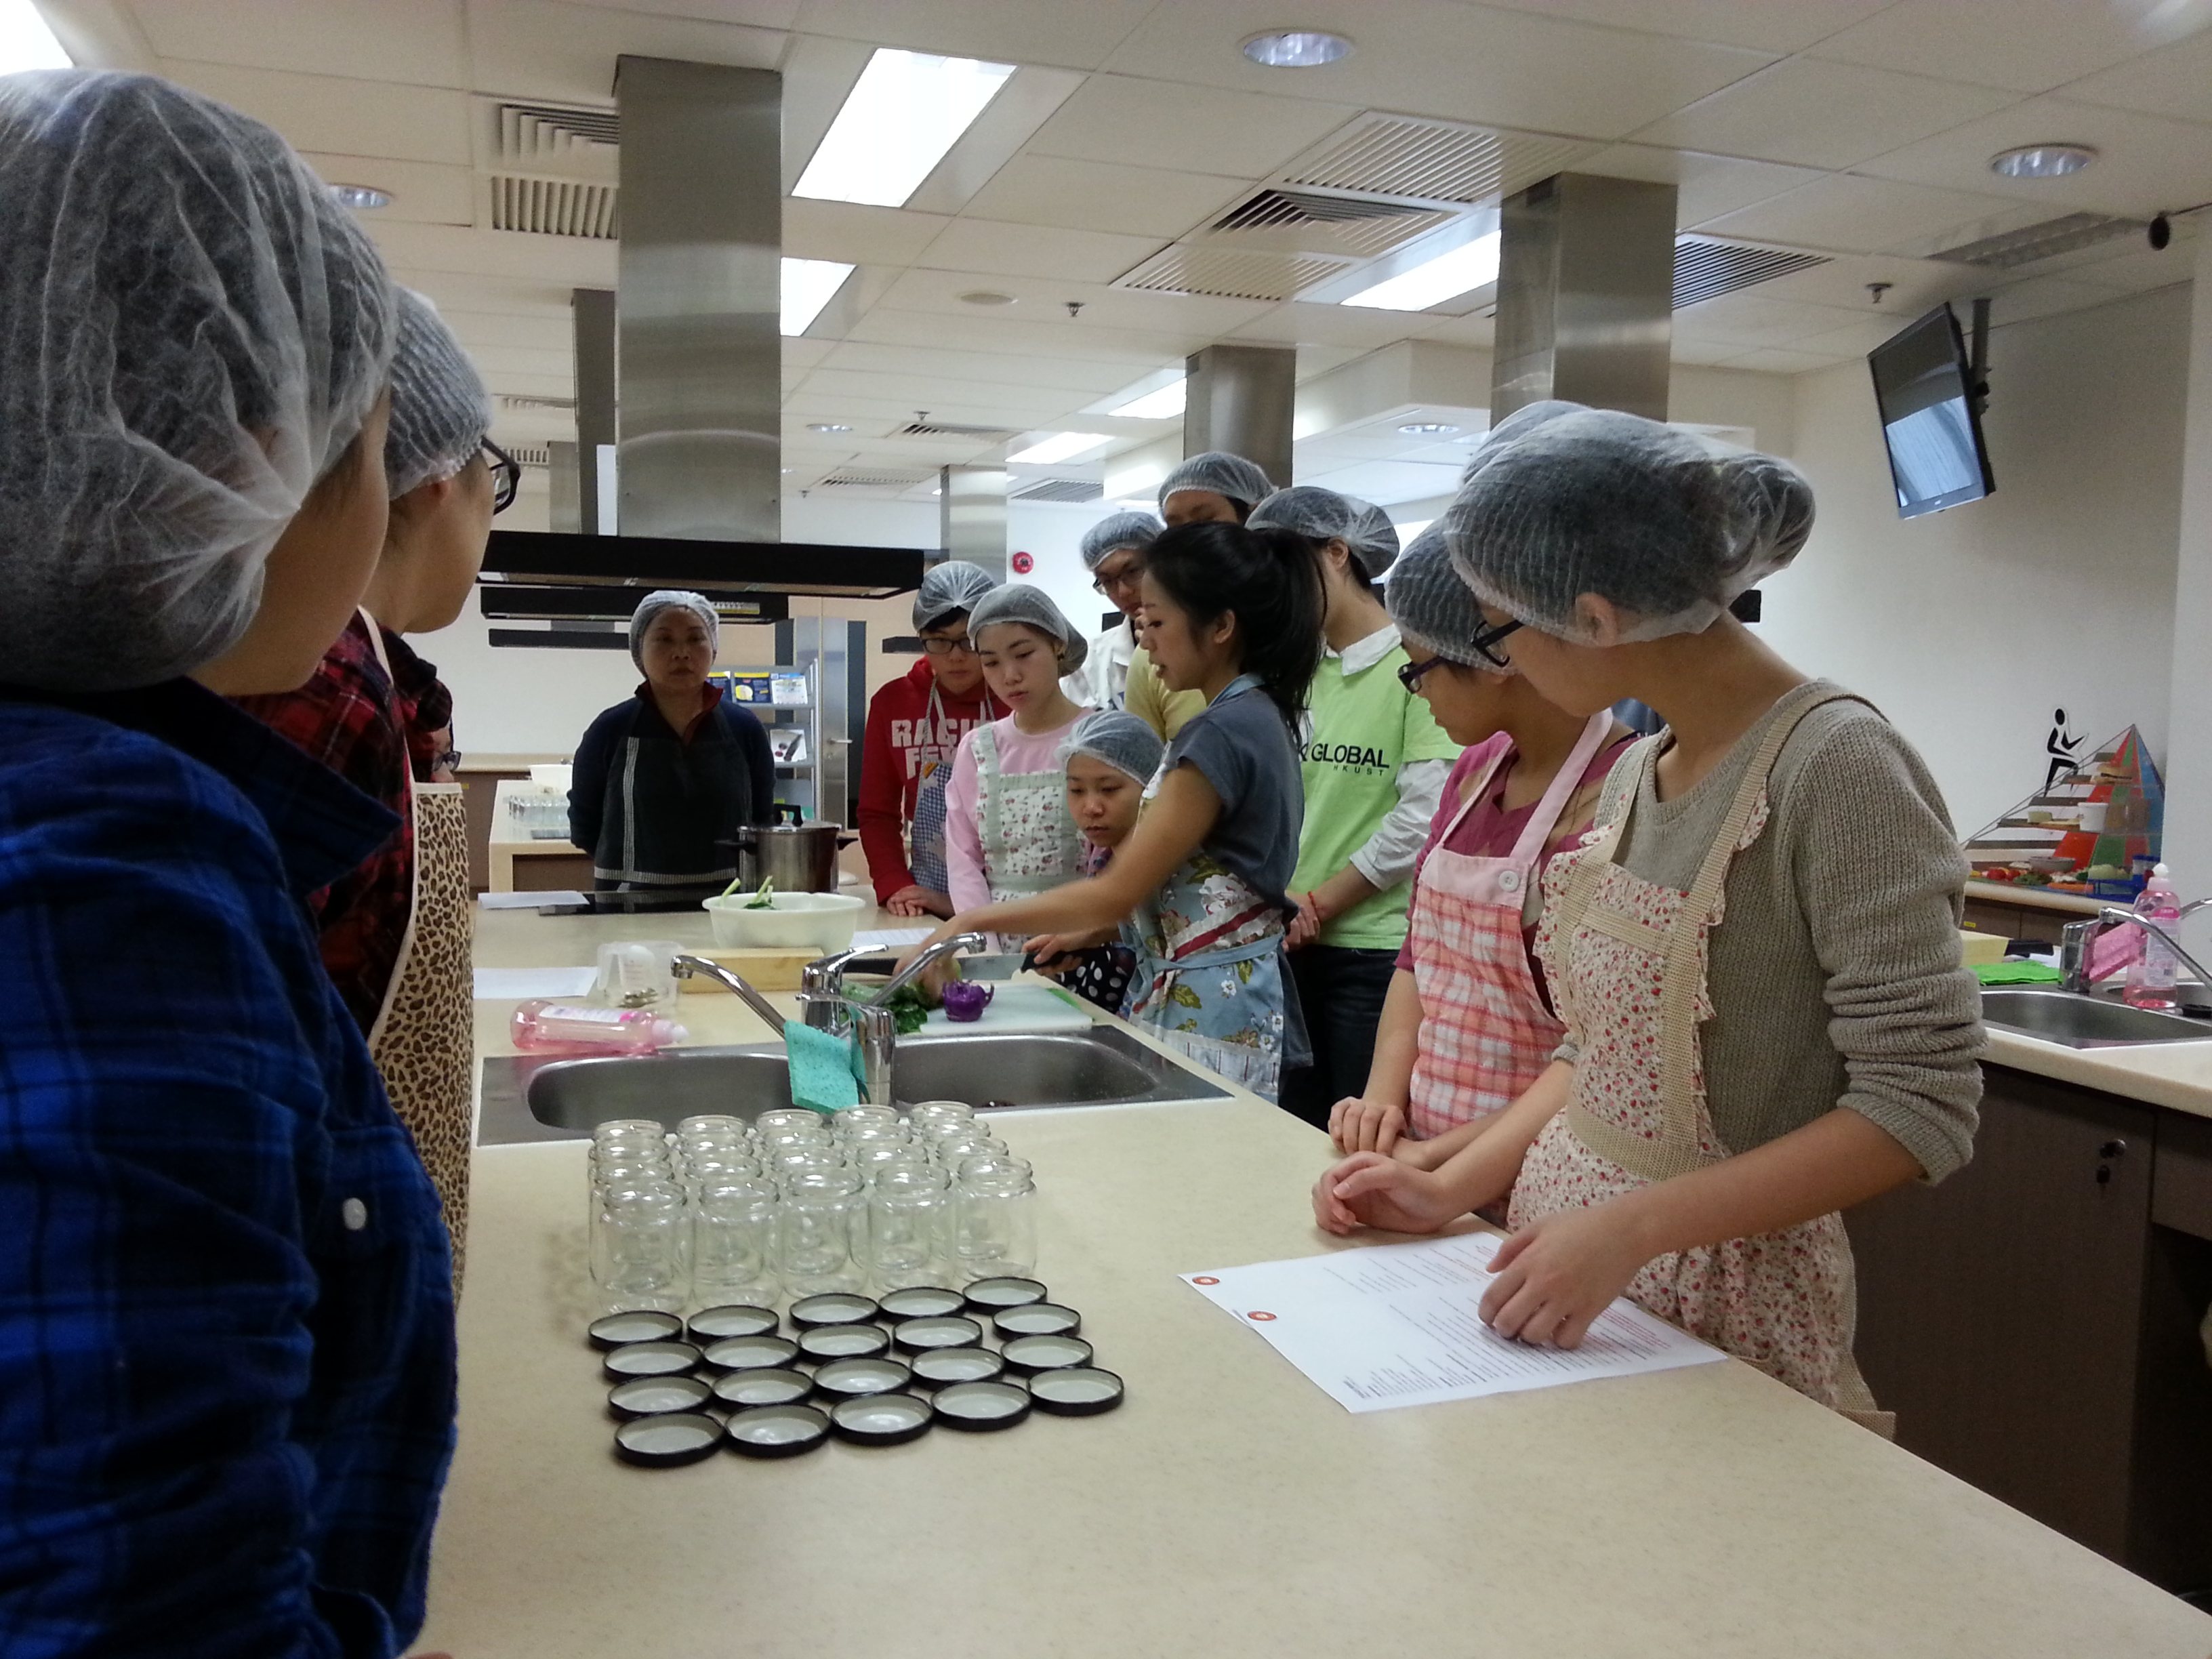 Feeding Hong Kong - Make Festive Treats for the Needy - Photo - 3